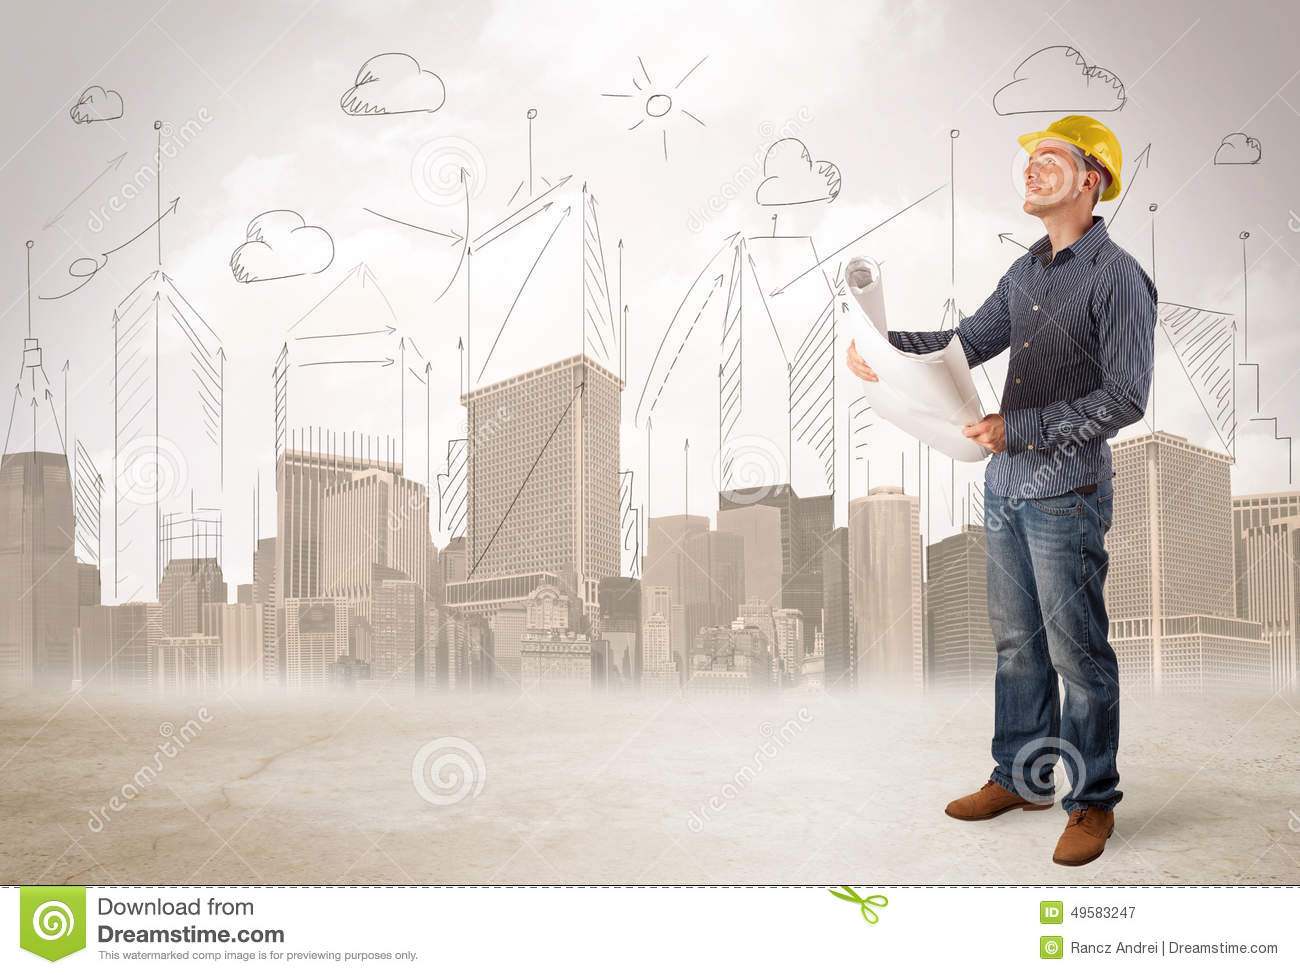 Business engineer planing at construction site with city background